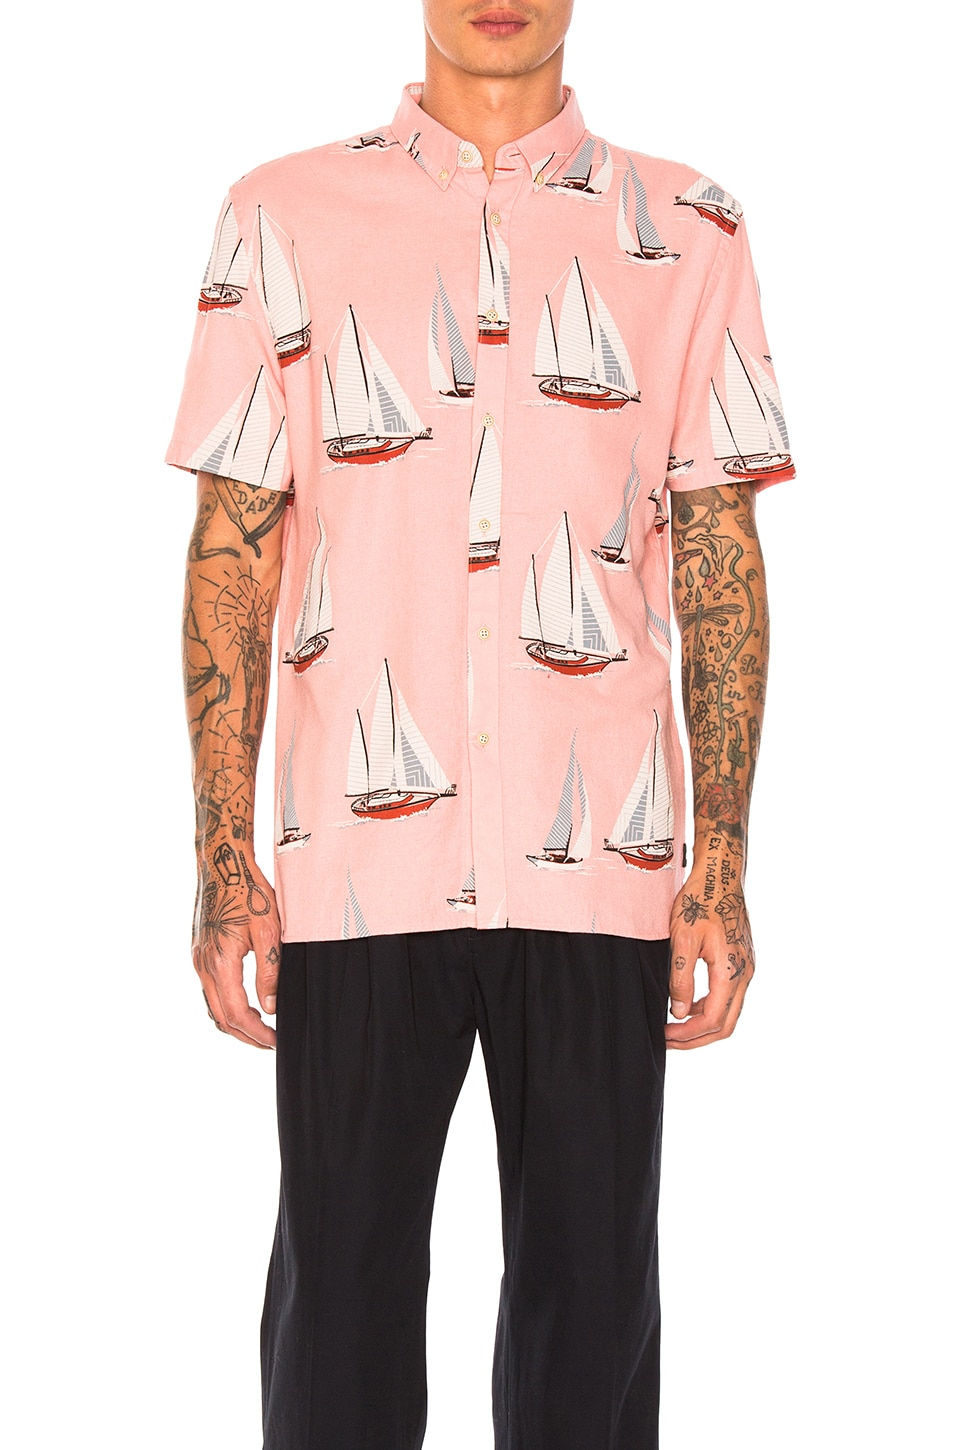 Yacht Club Shirt by Barney Cools